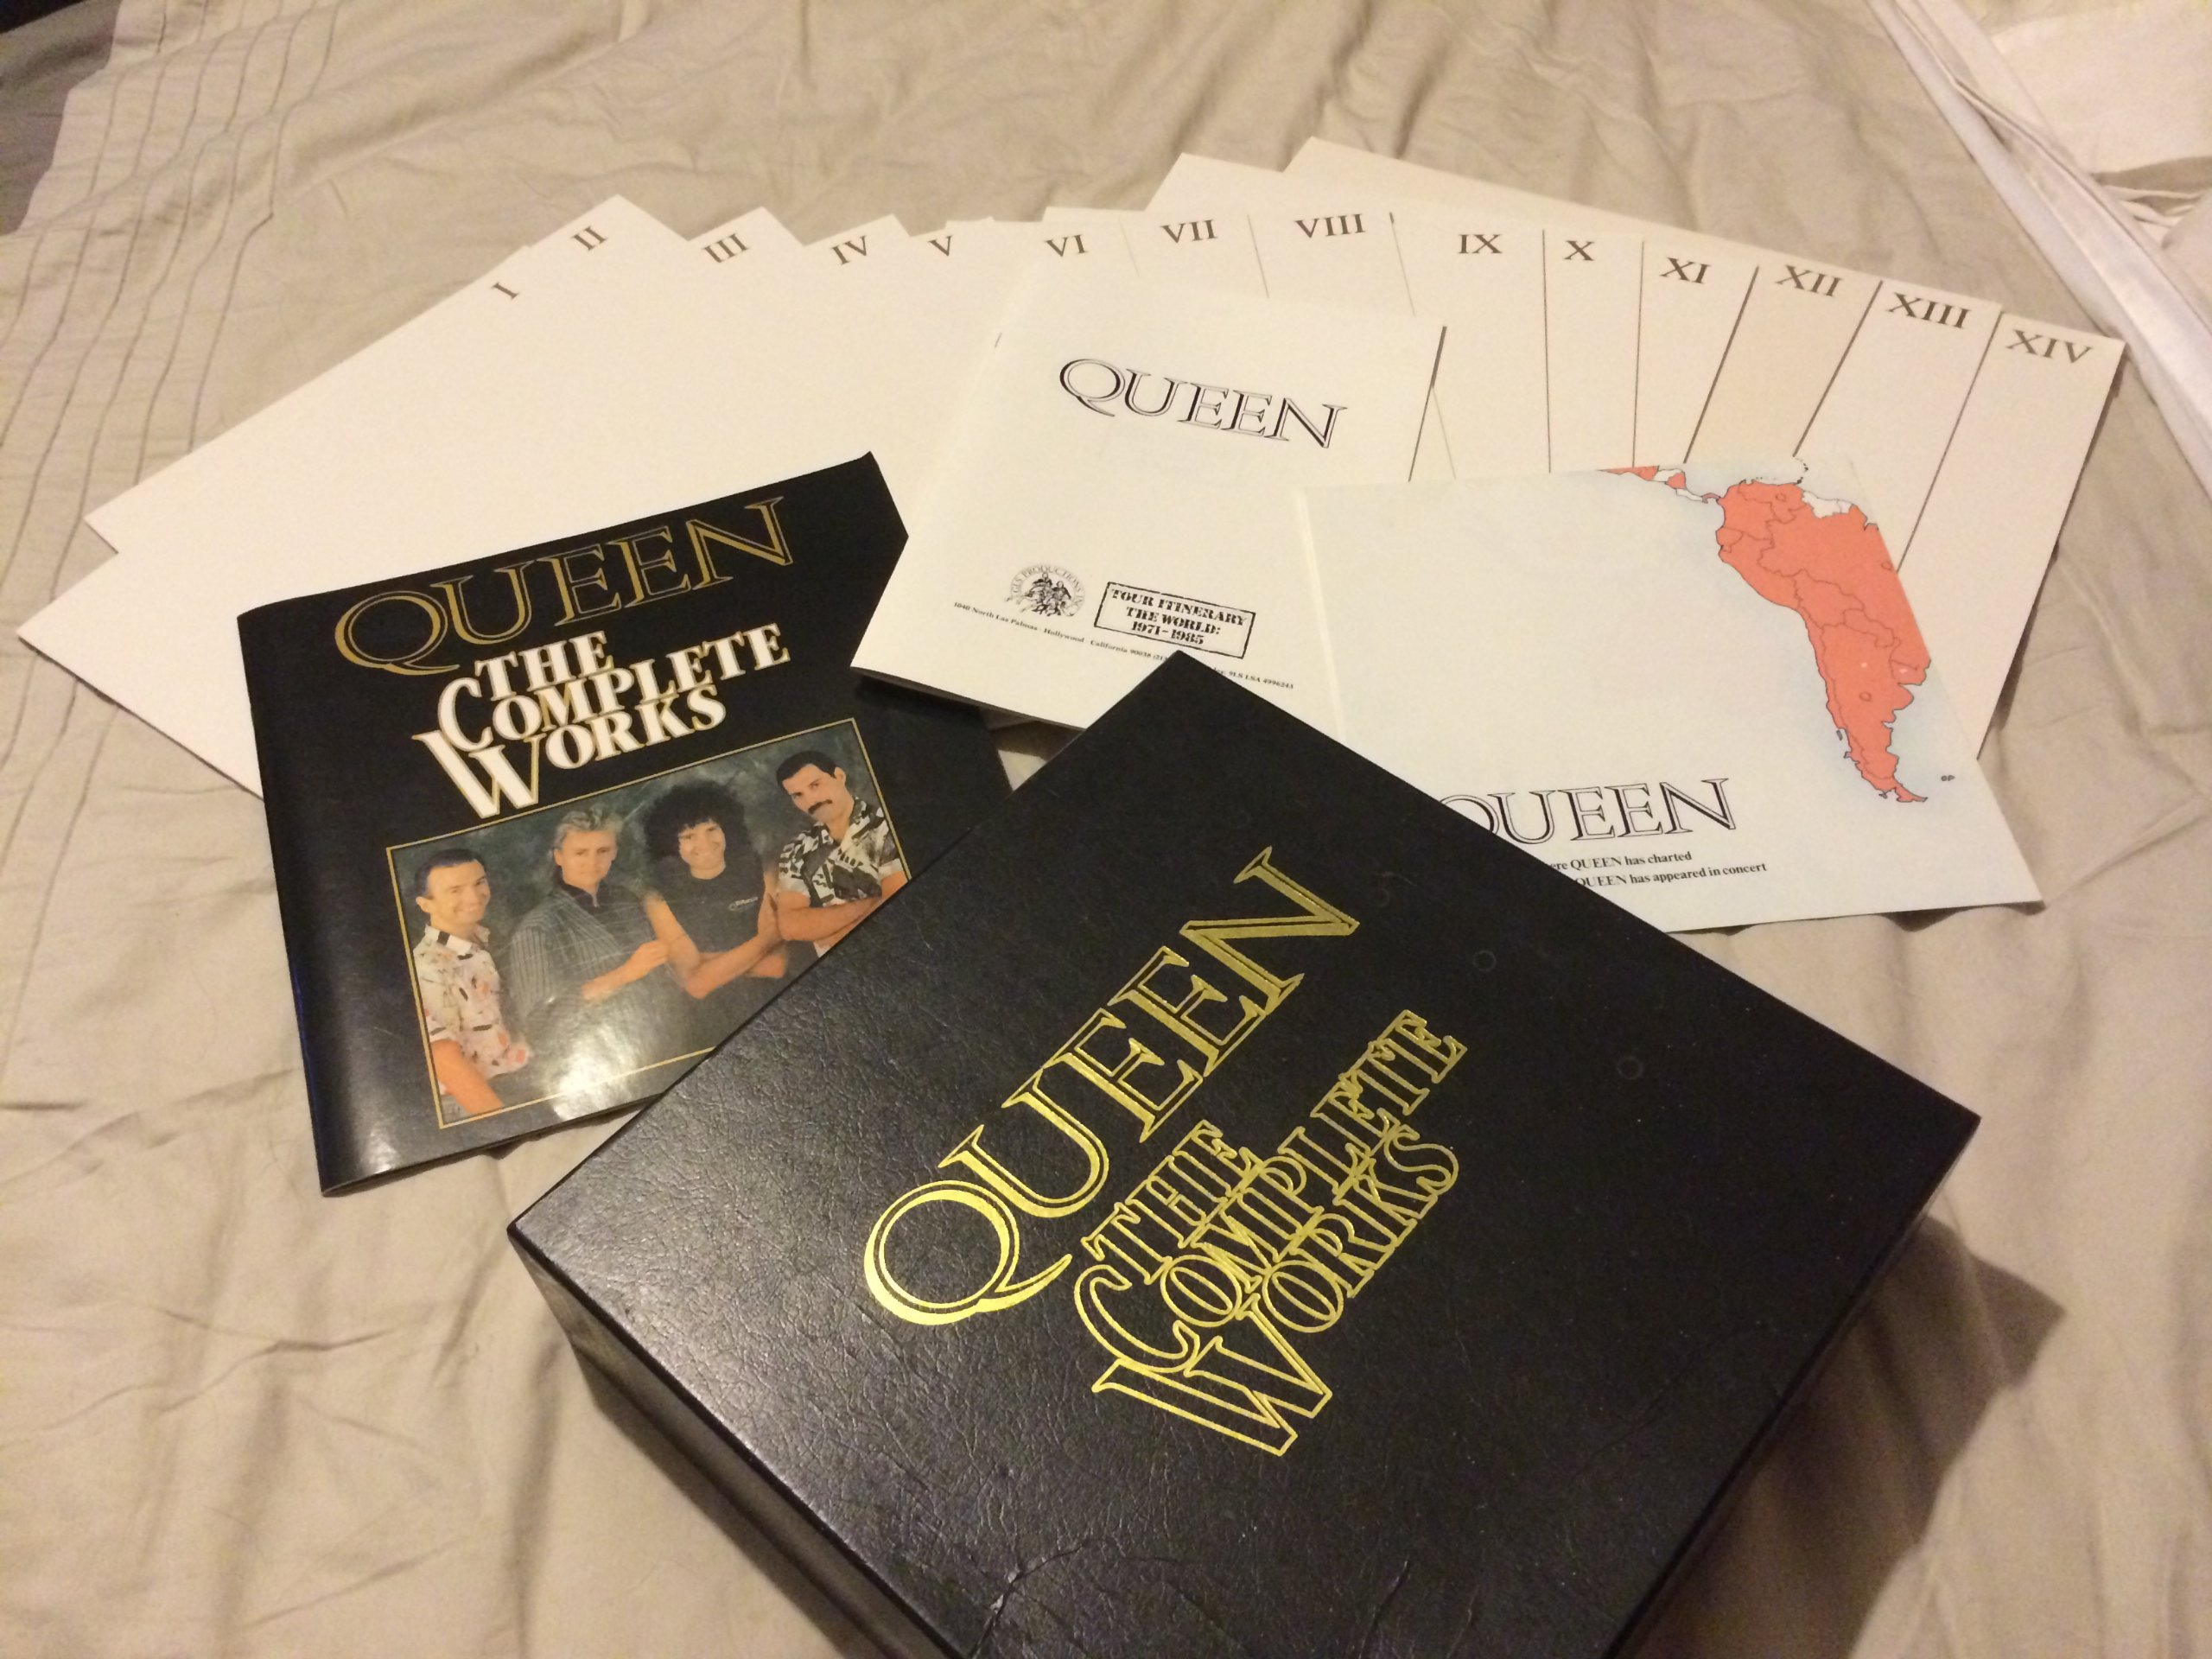 Queen the Complete Works Boxed 14 Vinyl Set